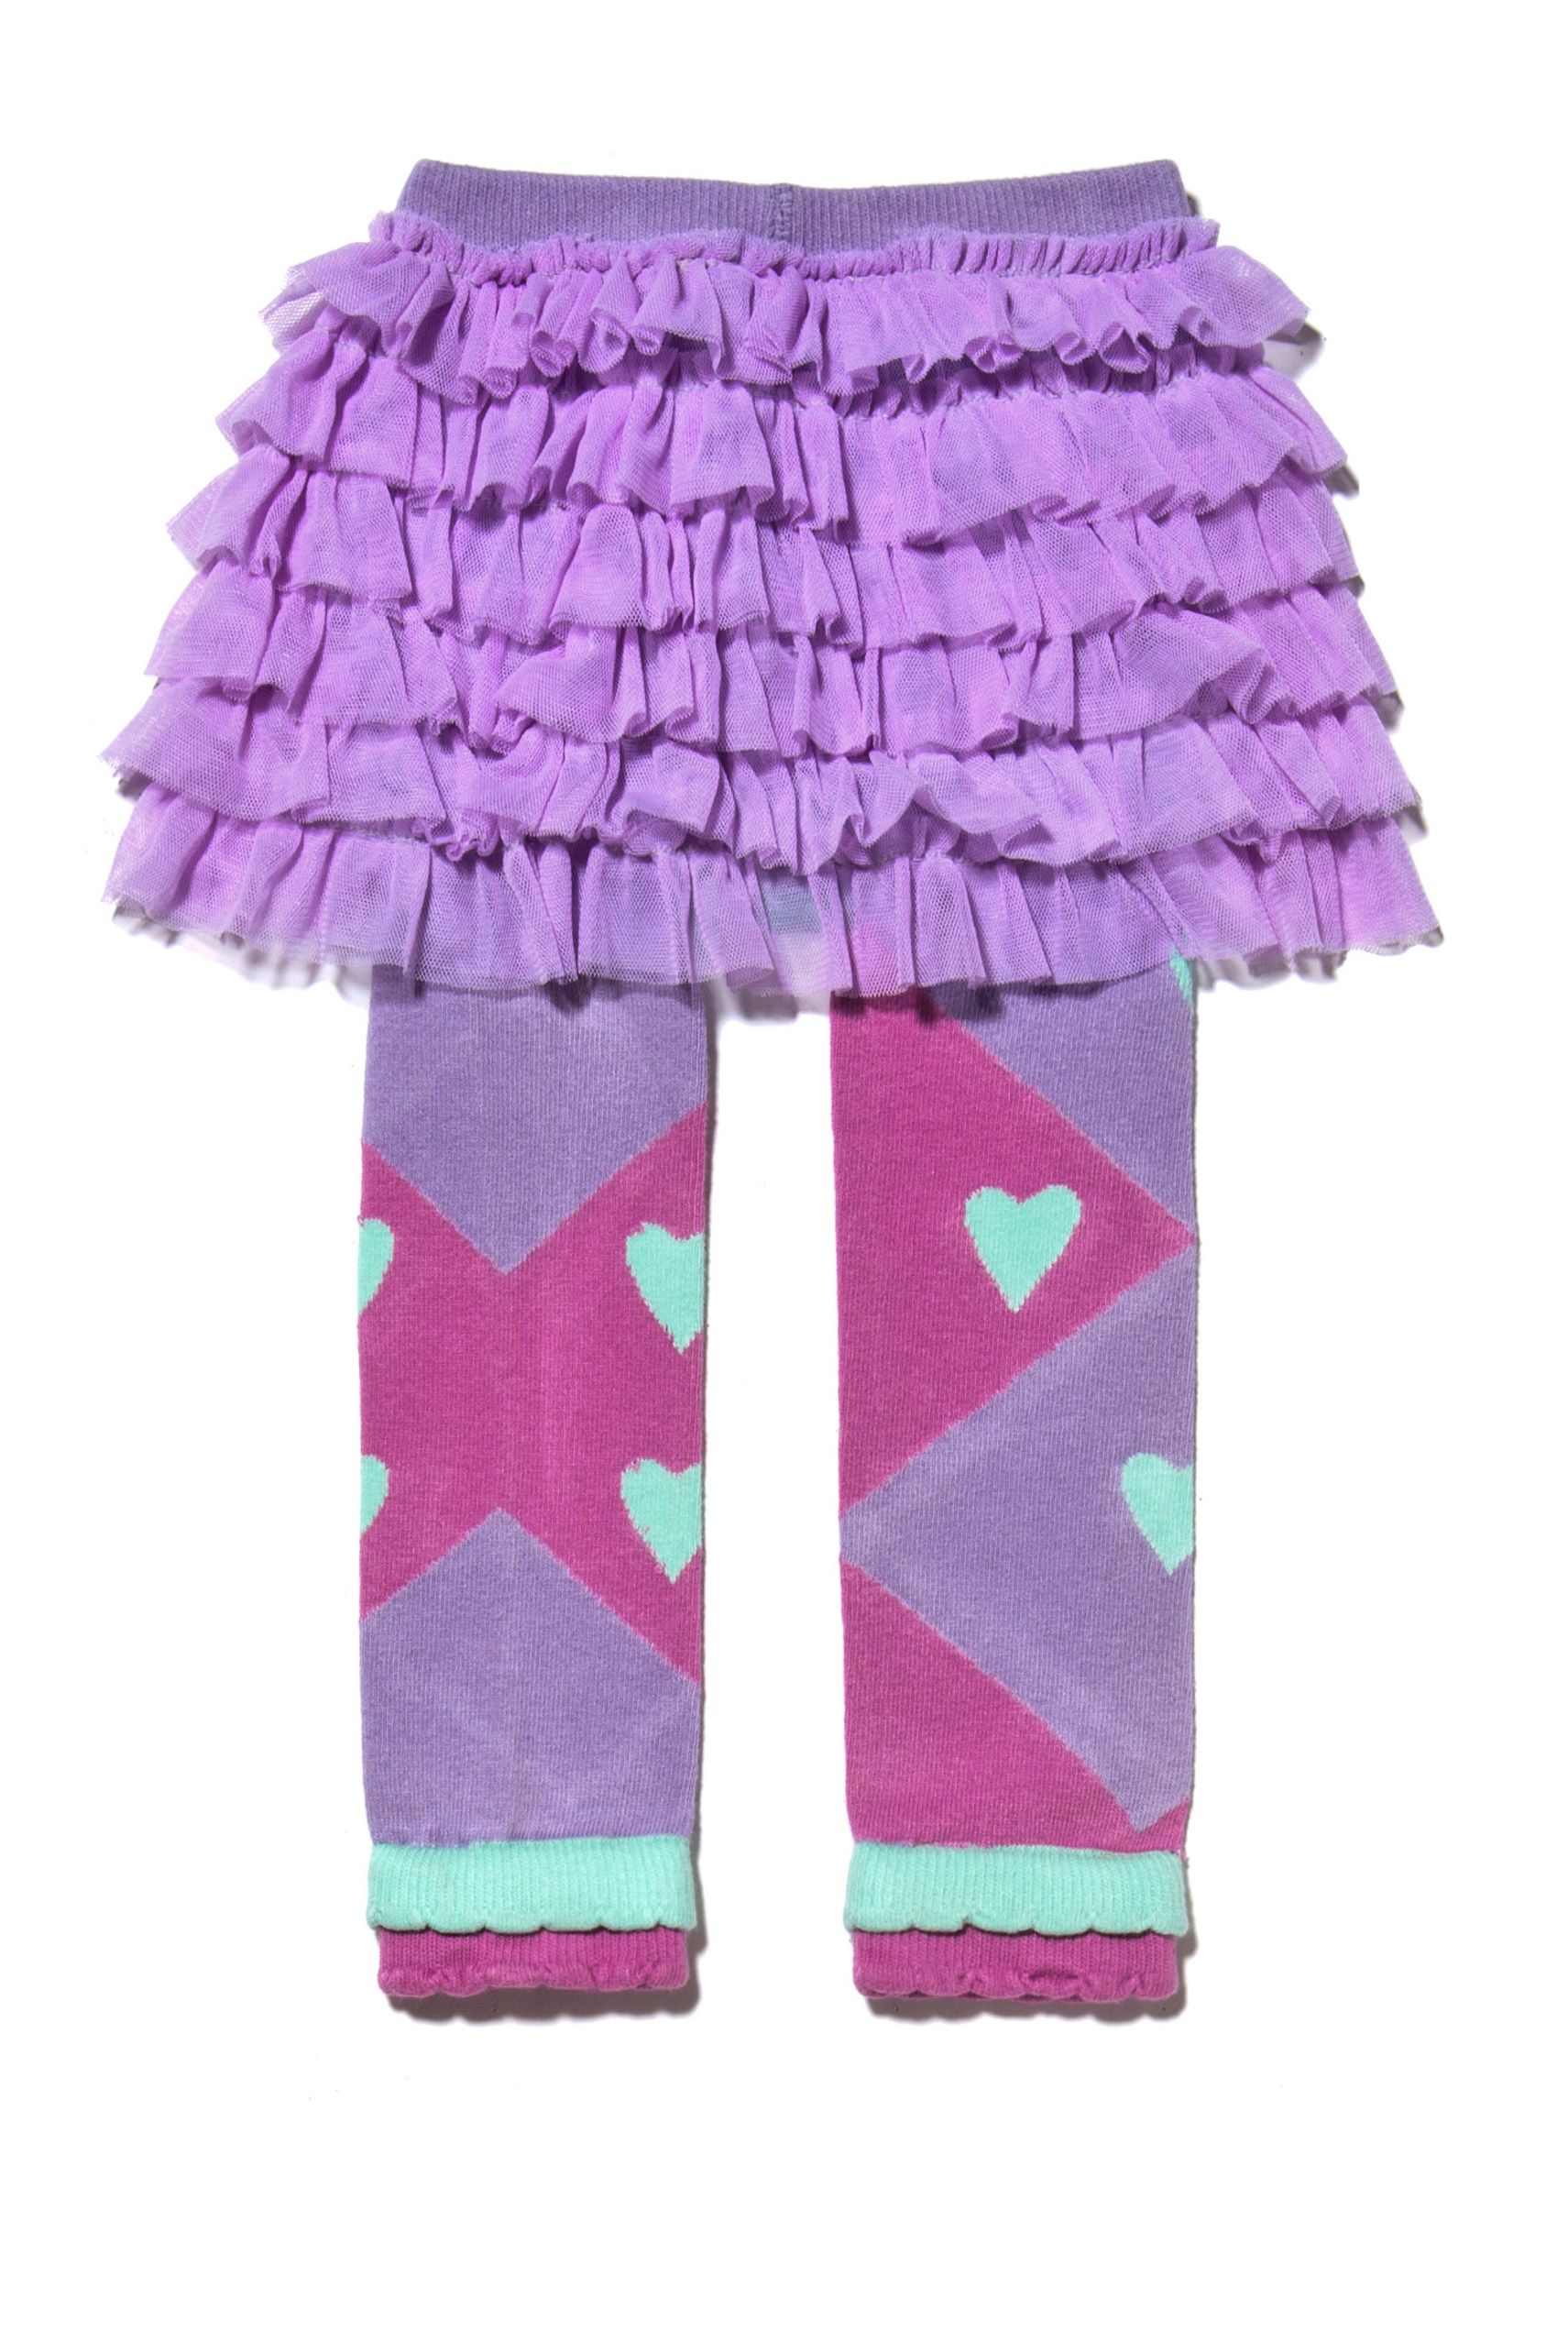 f1d4440a51d69 Luna Leggings Style | The Spring Heart Colorblock footless tights with  attached tutu skirt! Get